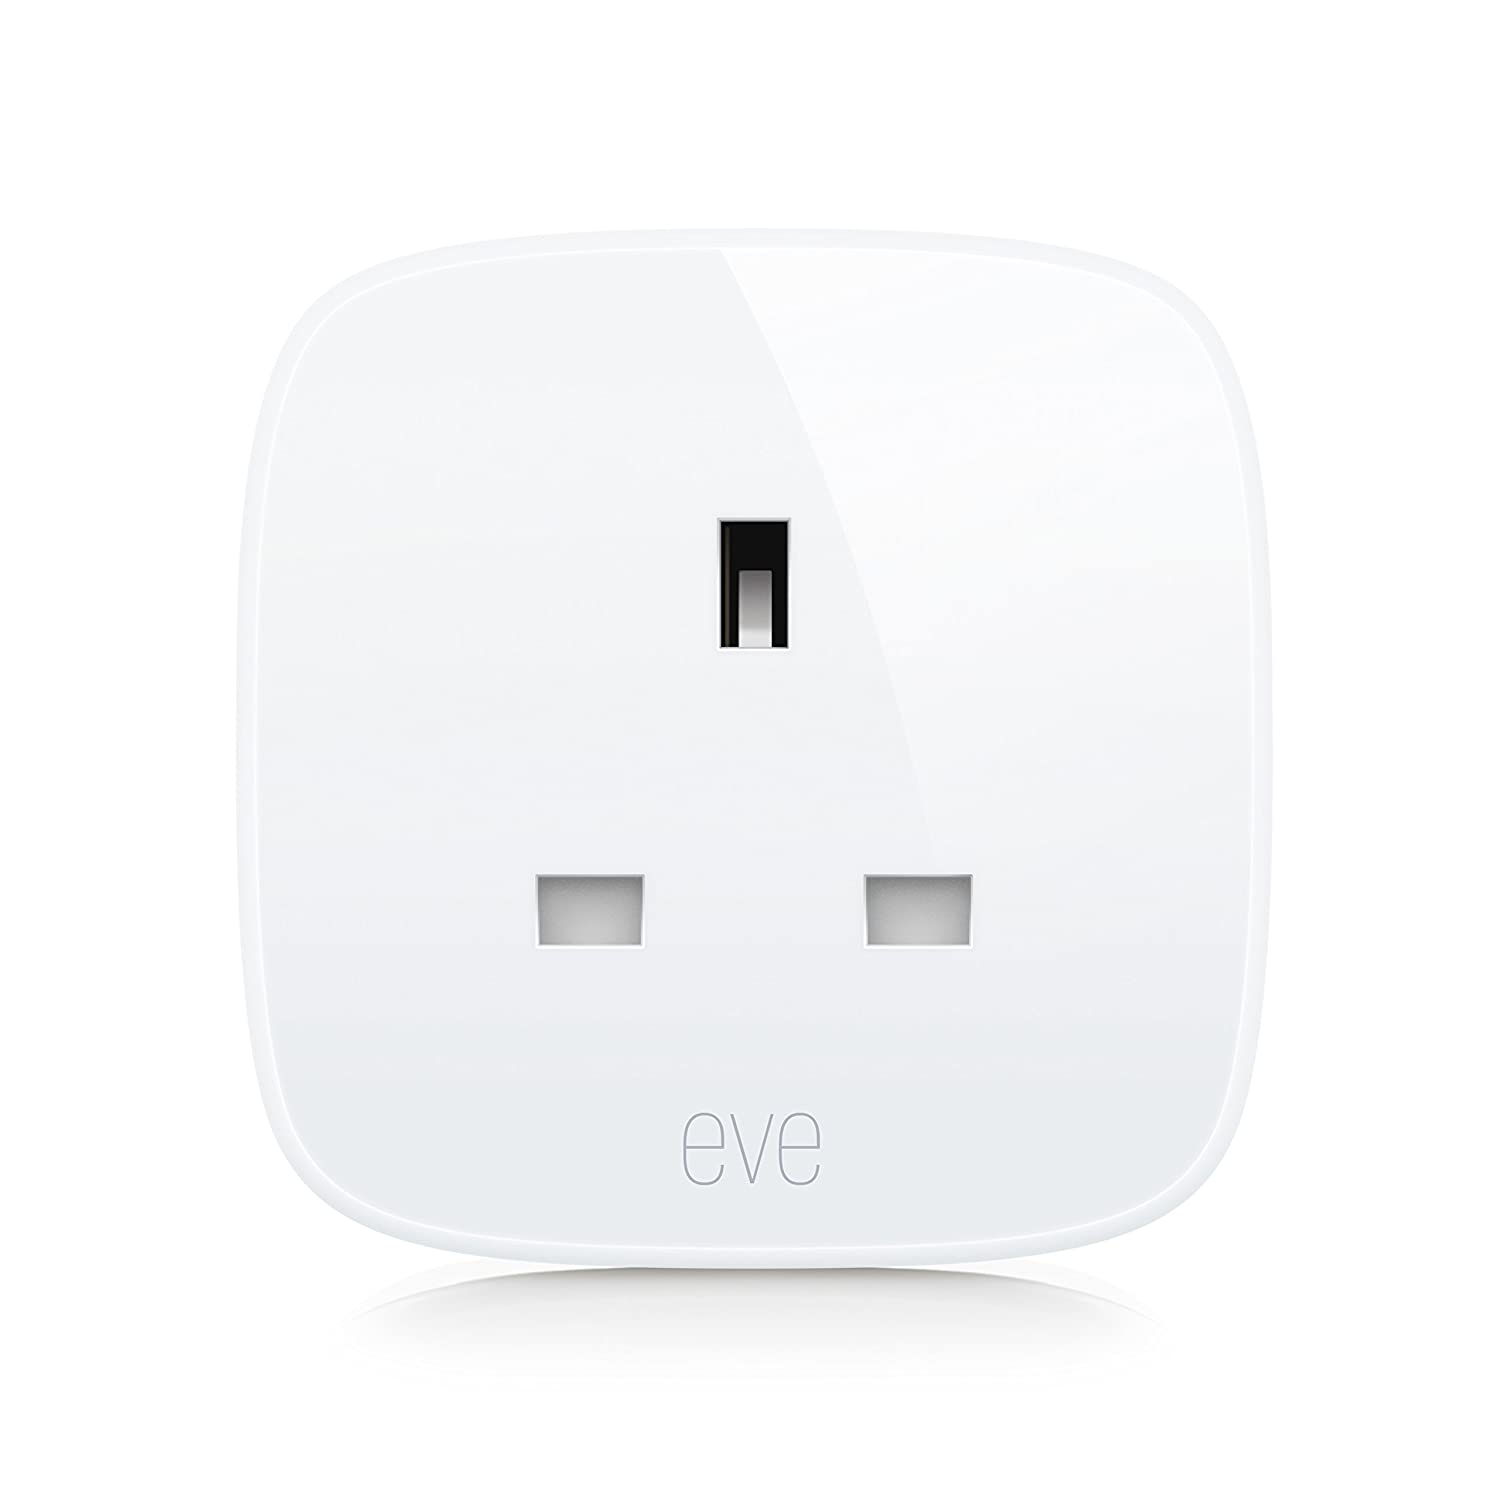 Eve Energy Uk Smart Plug Power Meter Switch A Connected 13 Amp Top Bs1363 Stevenson Plumbing Electrical Supplies Device On And Off Voice Control Bluetooth Low Apple Homekit Tv